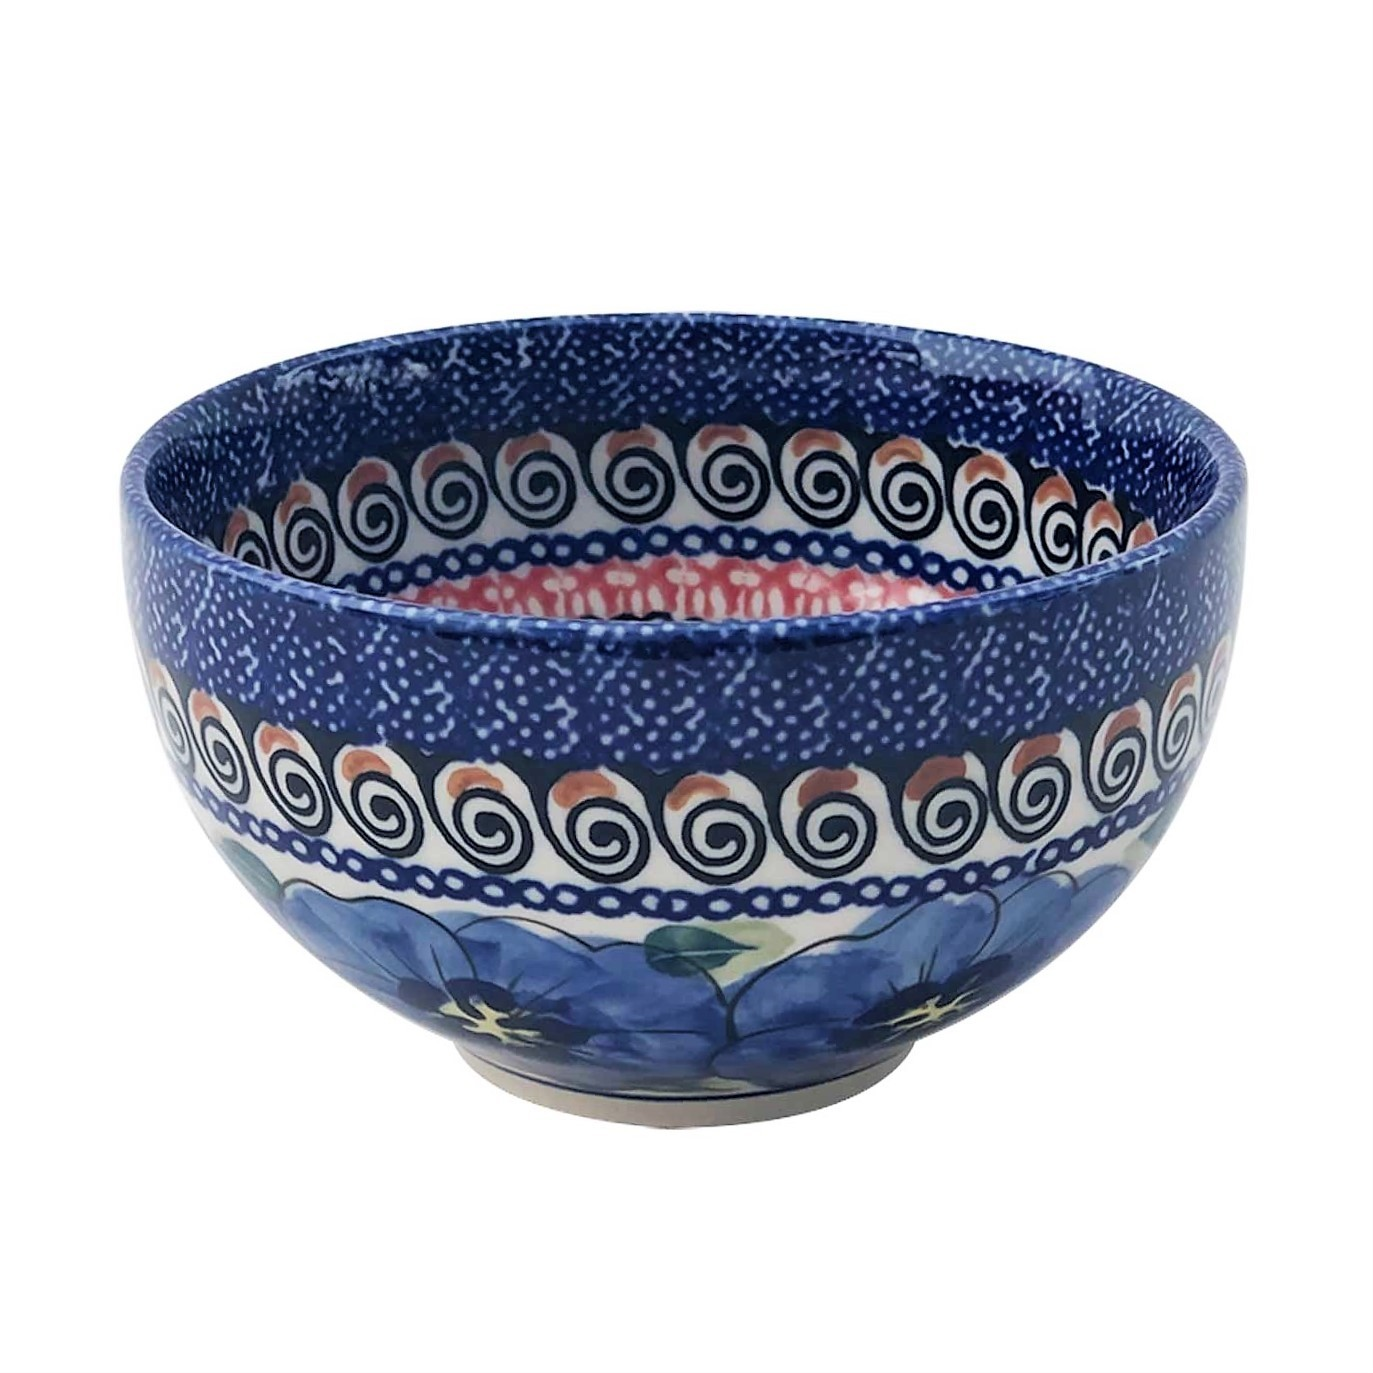 Pottery Avenue 4.5-inch Rice Stonewae Bowl - 1836-148AR Blue Pansy